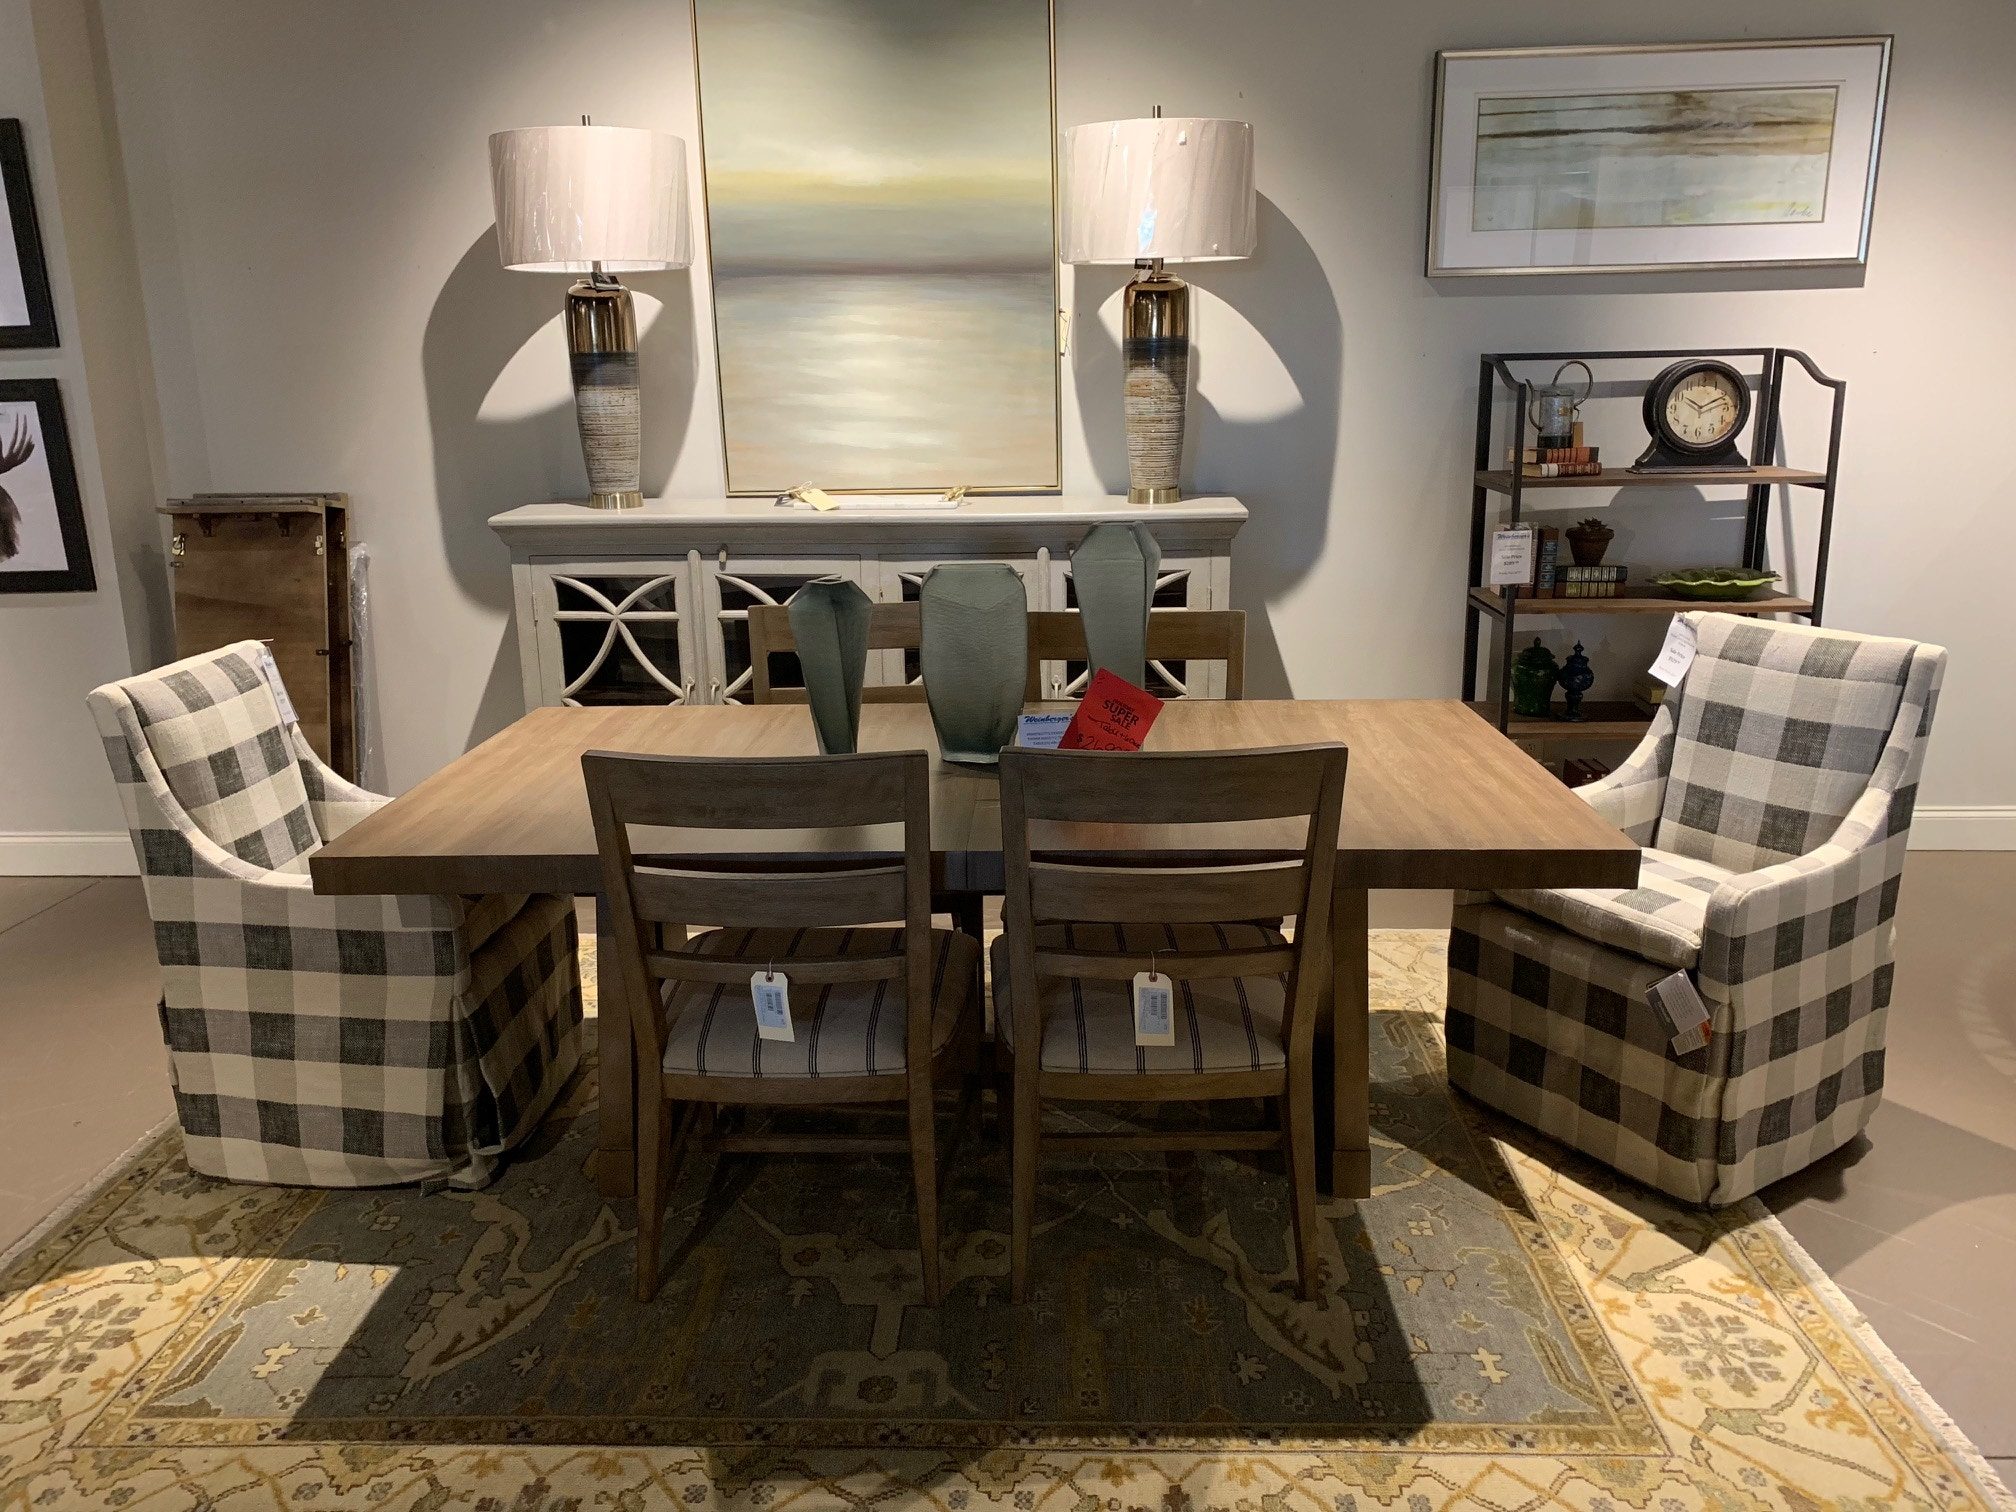 clearance thomasville dining table and 6 chairs 8582 weinberger s rh weinbergersfurniture com thomasville dining table and chairs thomasville dining table pads